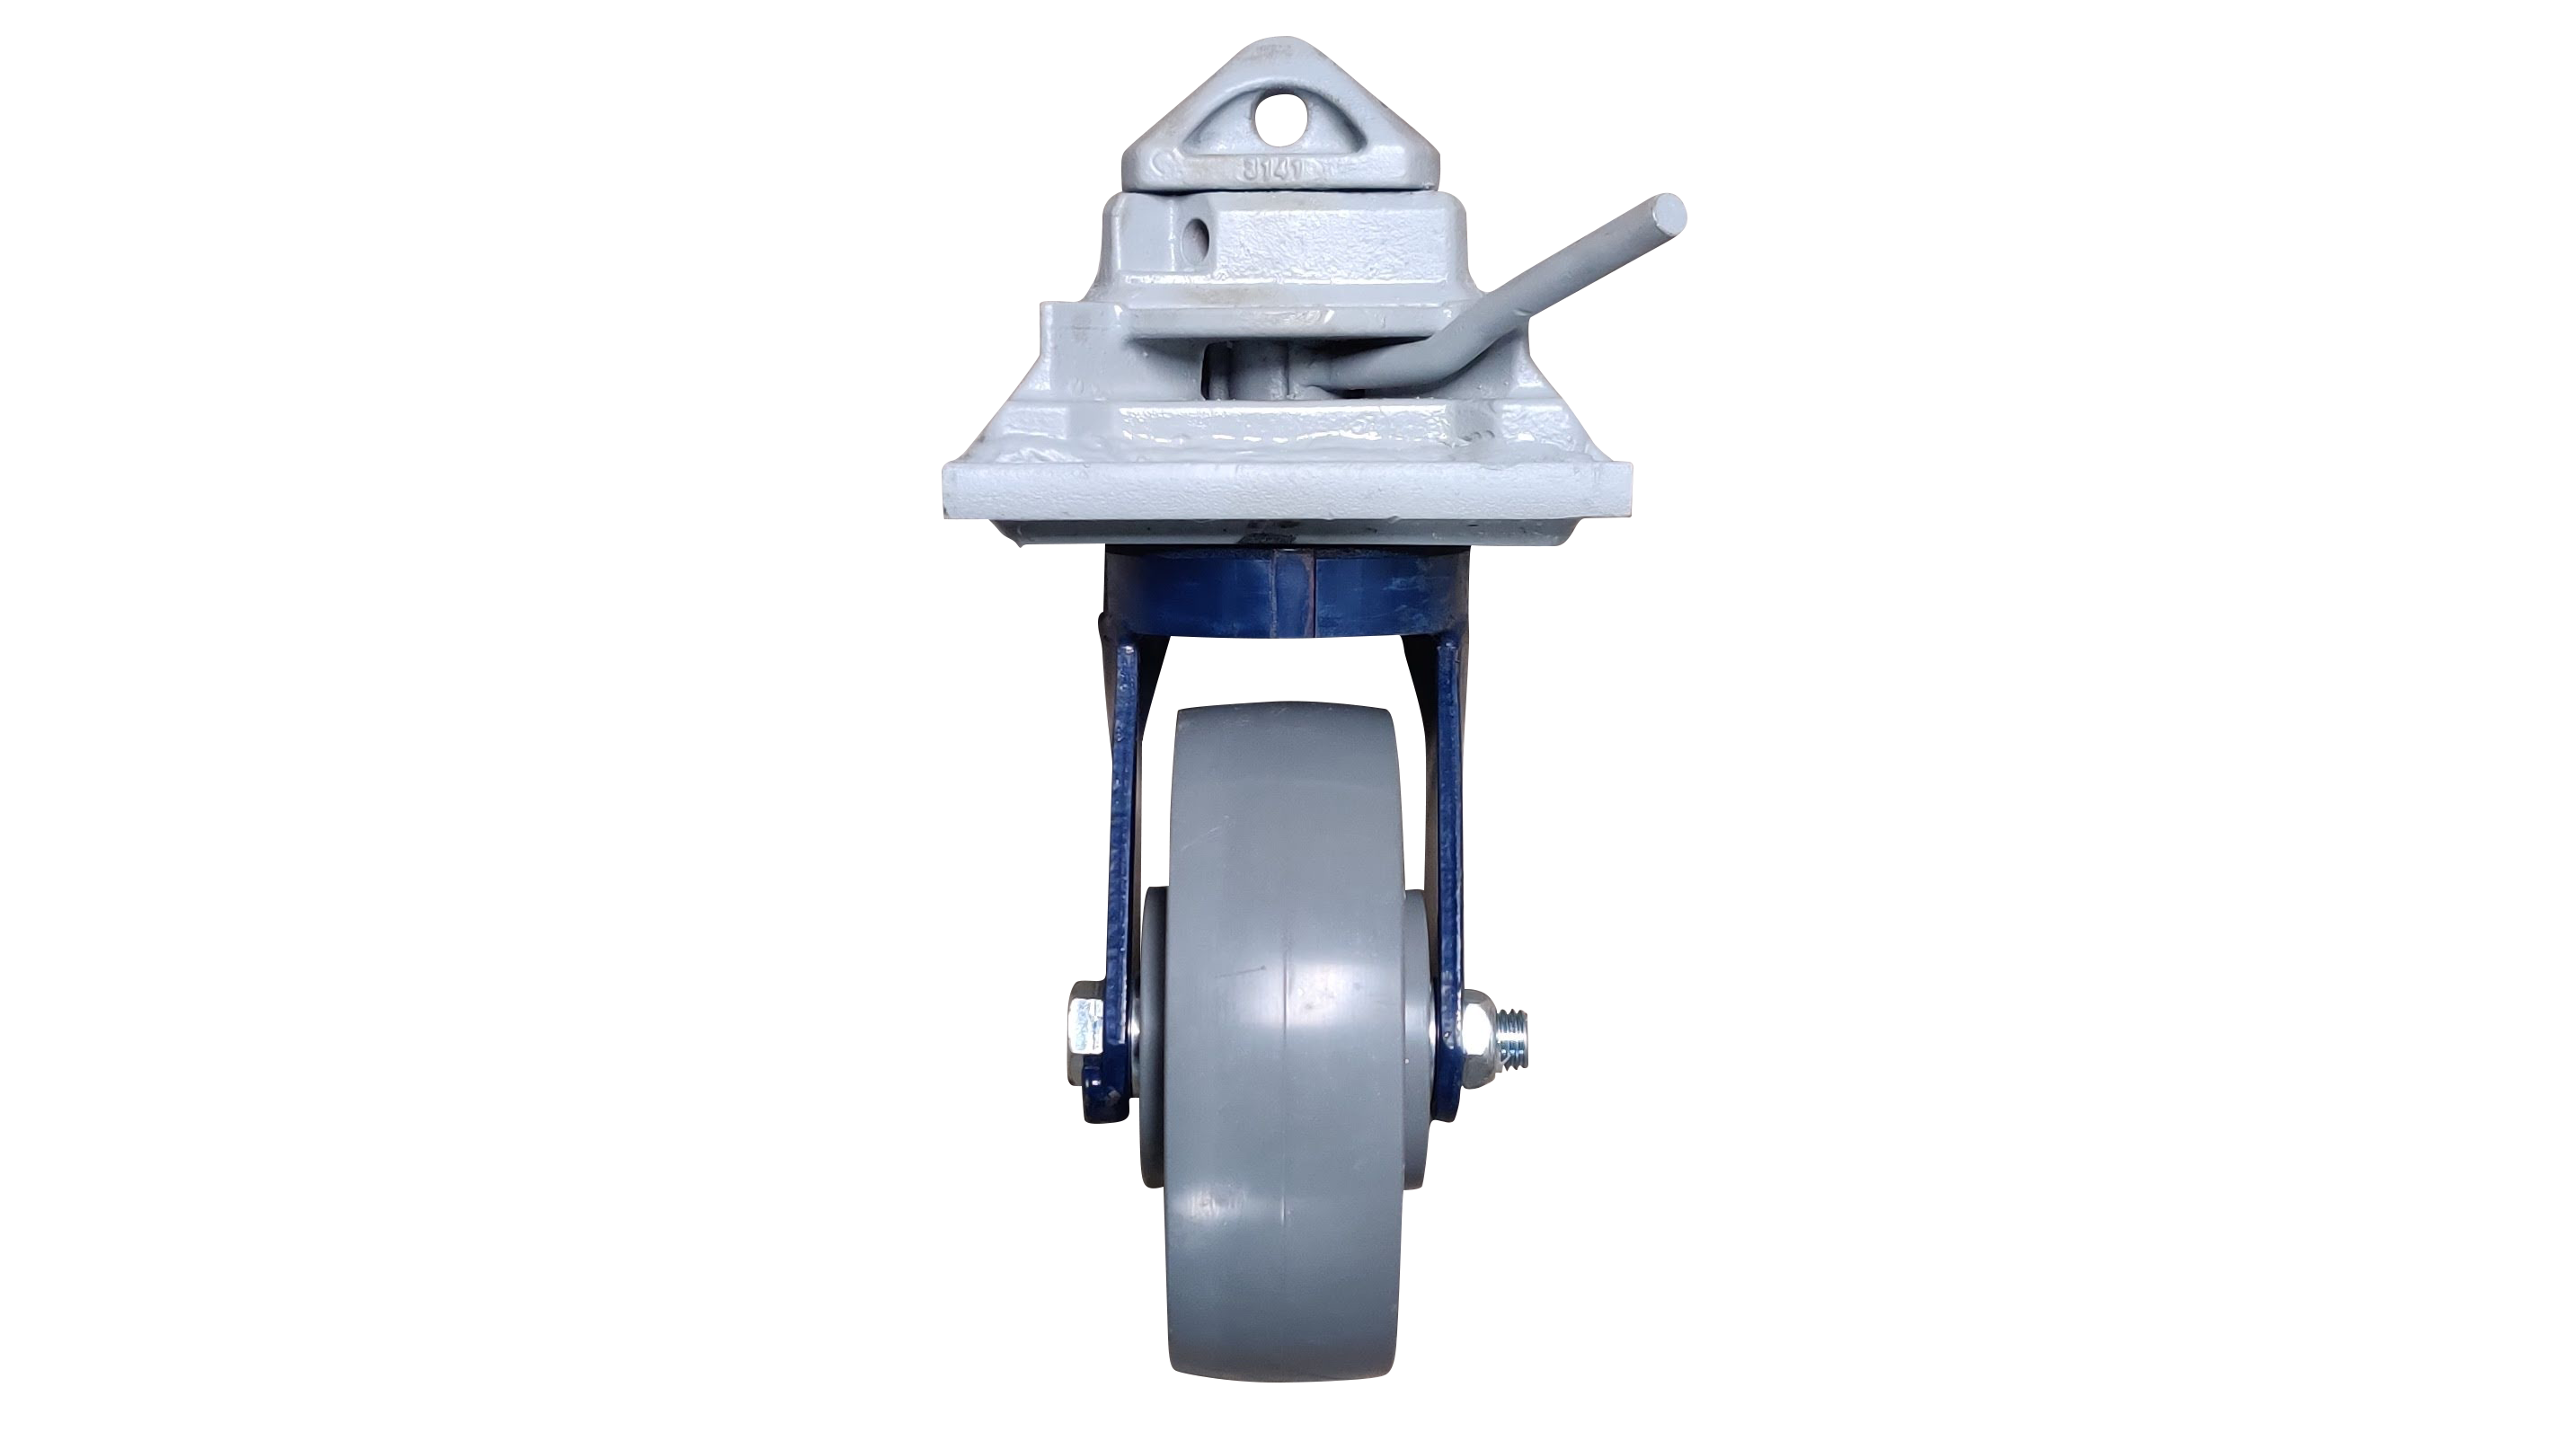 Shipping container caster wheel